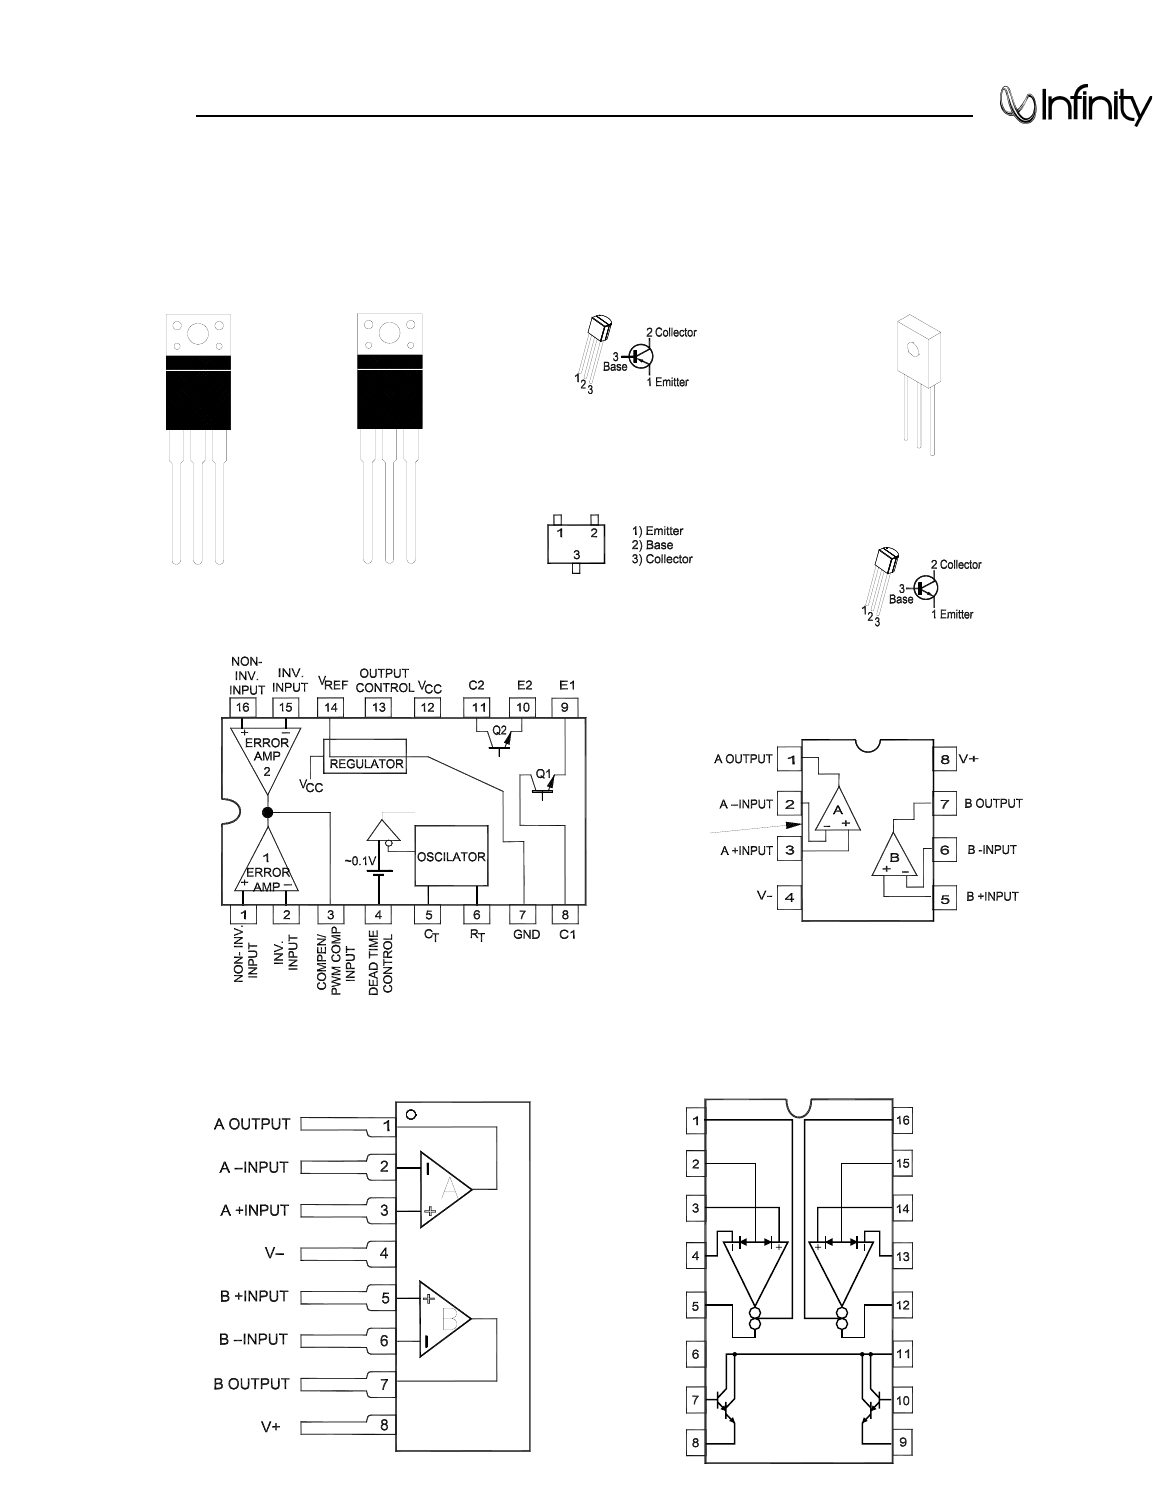 Infinity bass link integrated circuit diagrams